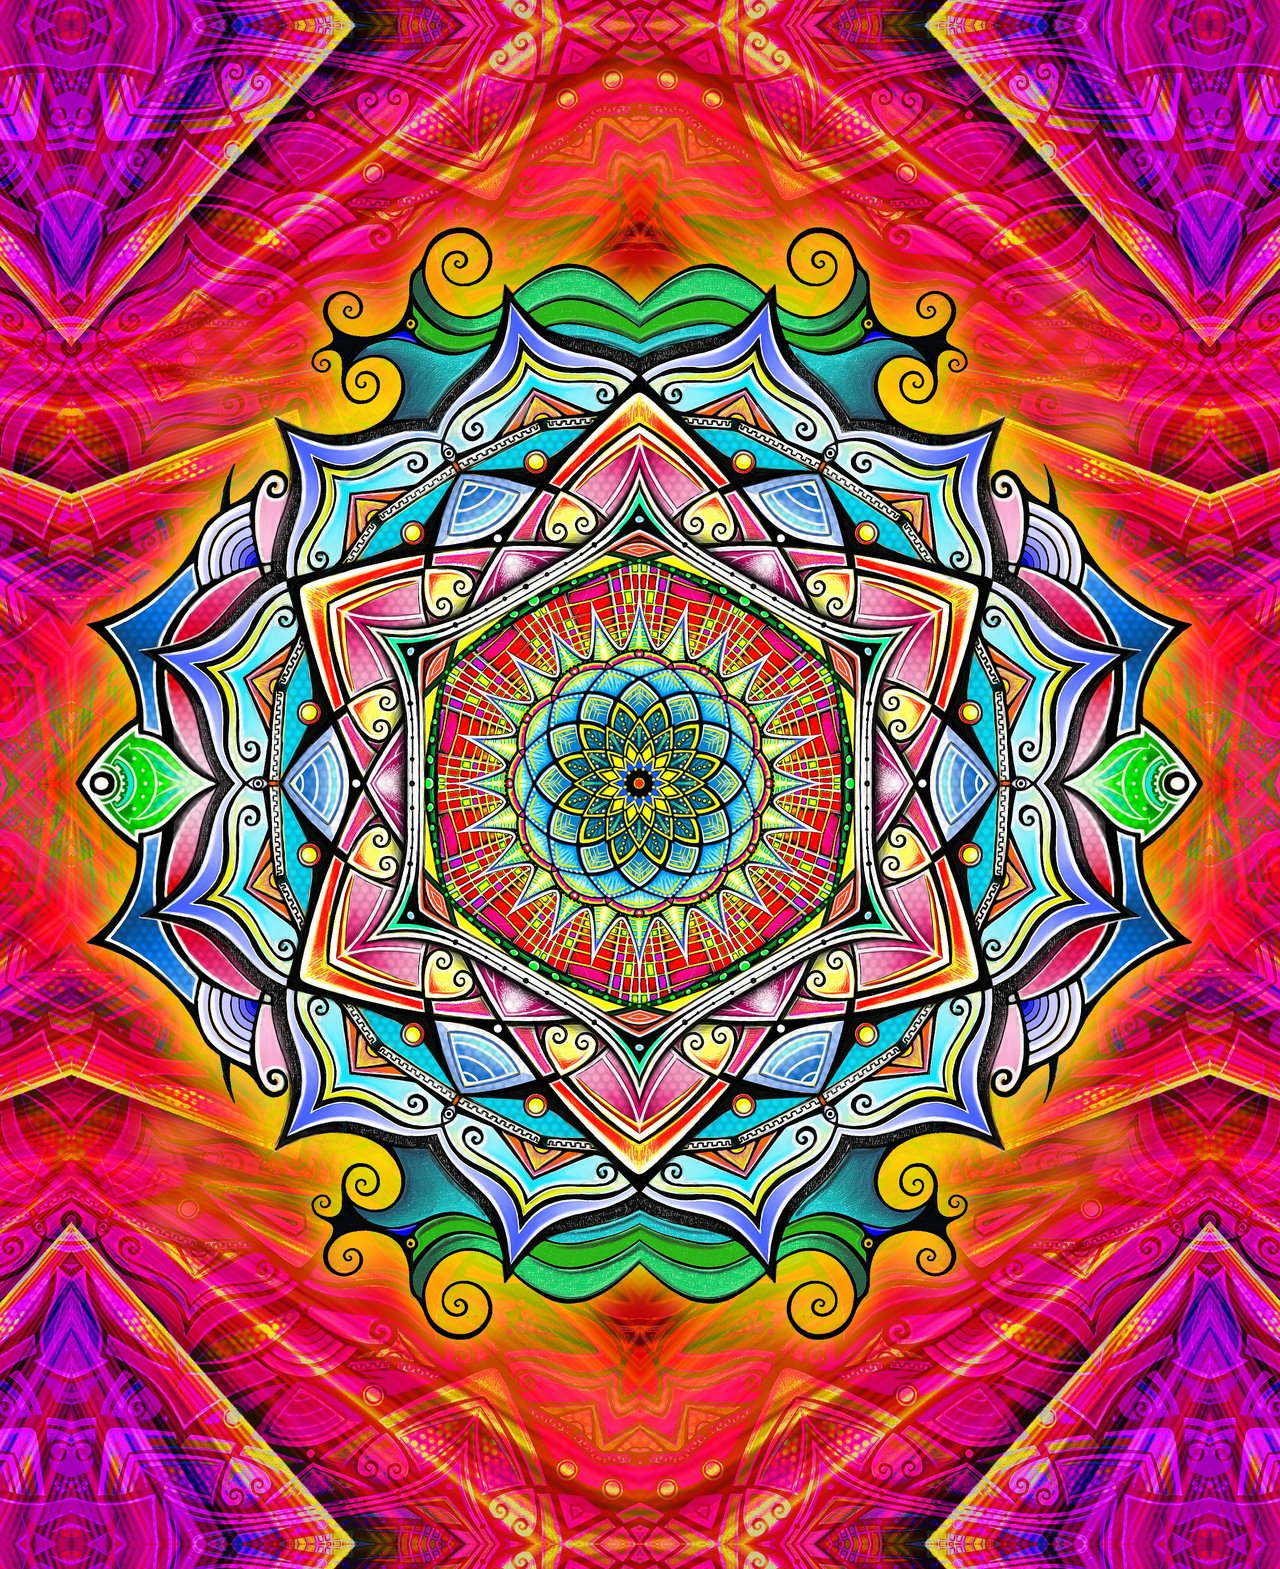 Wallpaper iphone mandala - Mandala Wallpaper Iphone Top Hd Images For Free